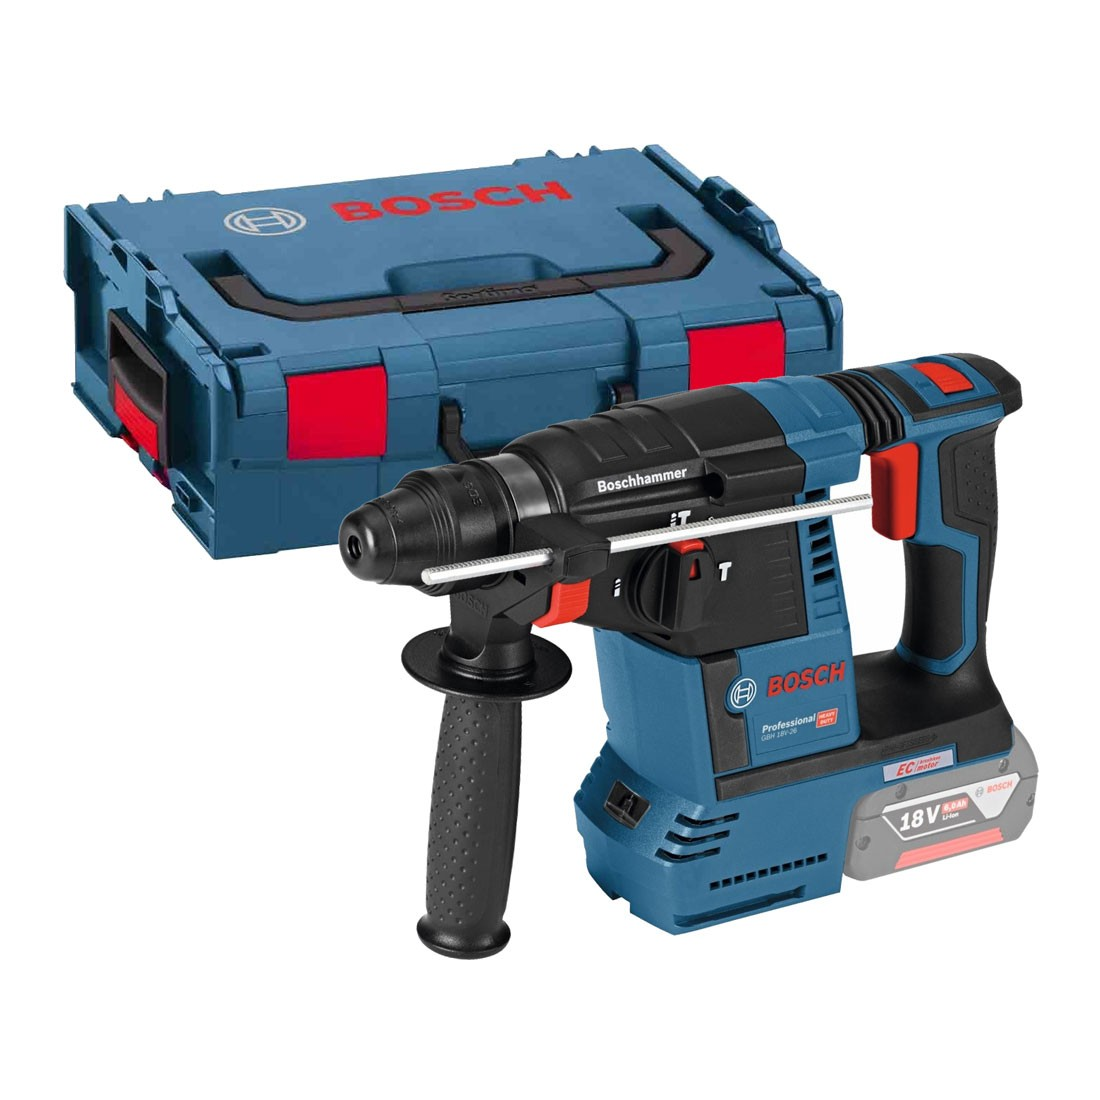 bosch gbh 18 v 26 sds plus brushless rotary hammer body only in l boxx 0611909001 powertool world. Black Bedroom Furniture Sets. Home Design Ideas